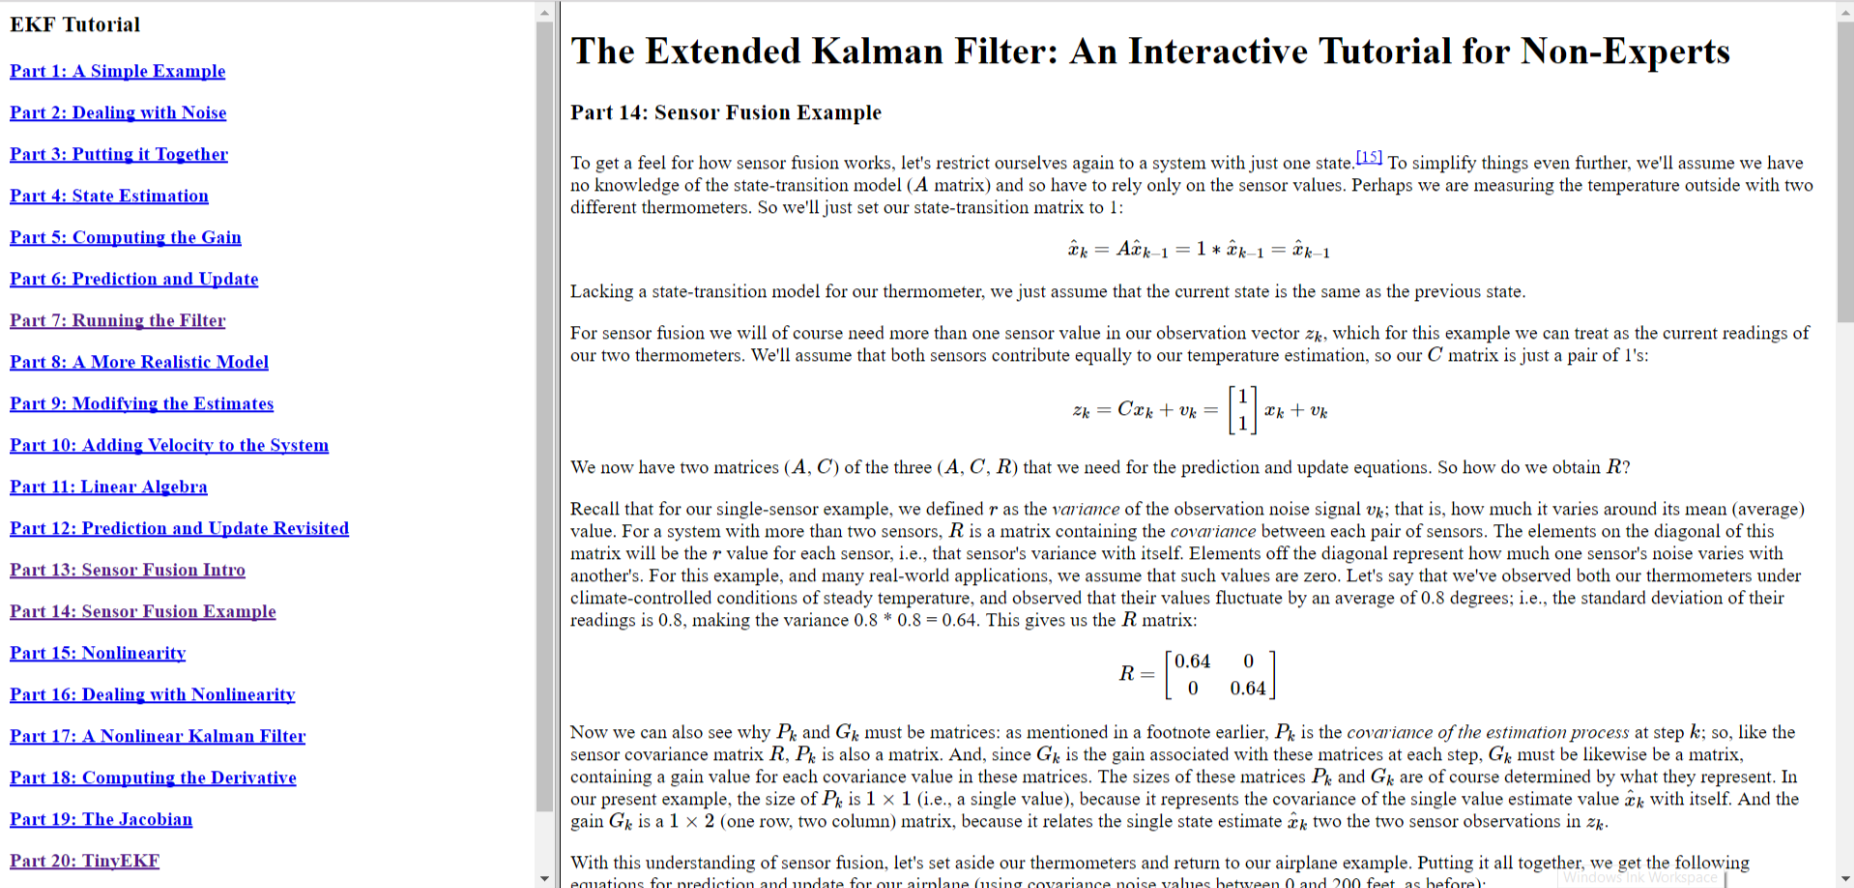 the extended kalman filter: an interactive tutorial for non-experts